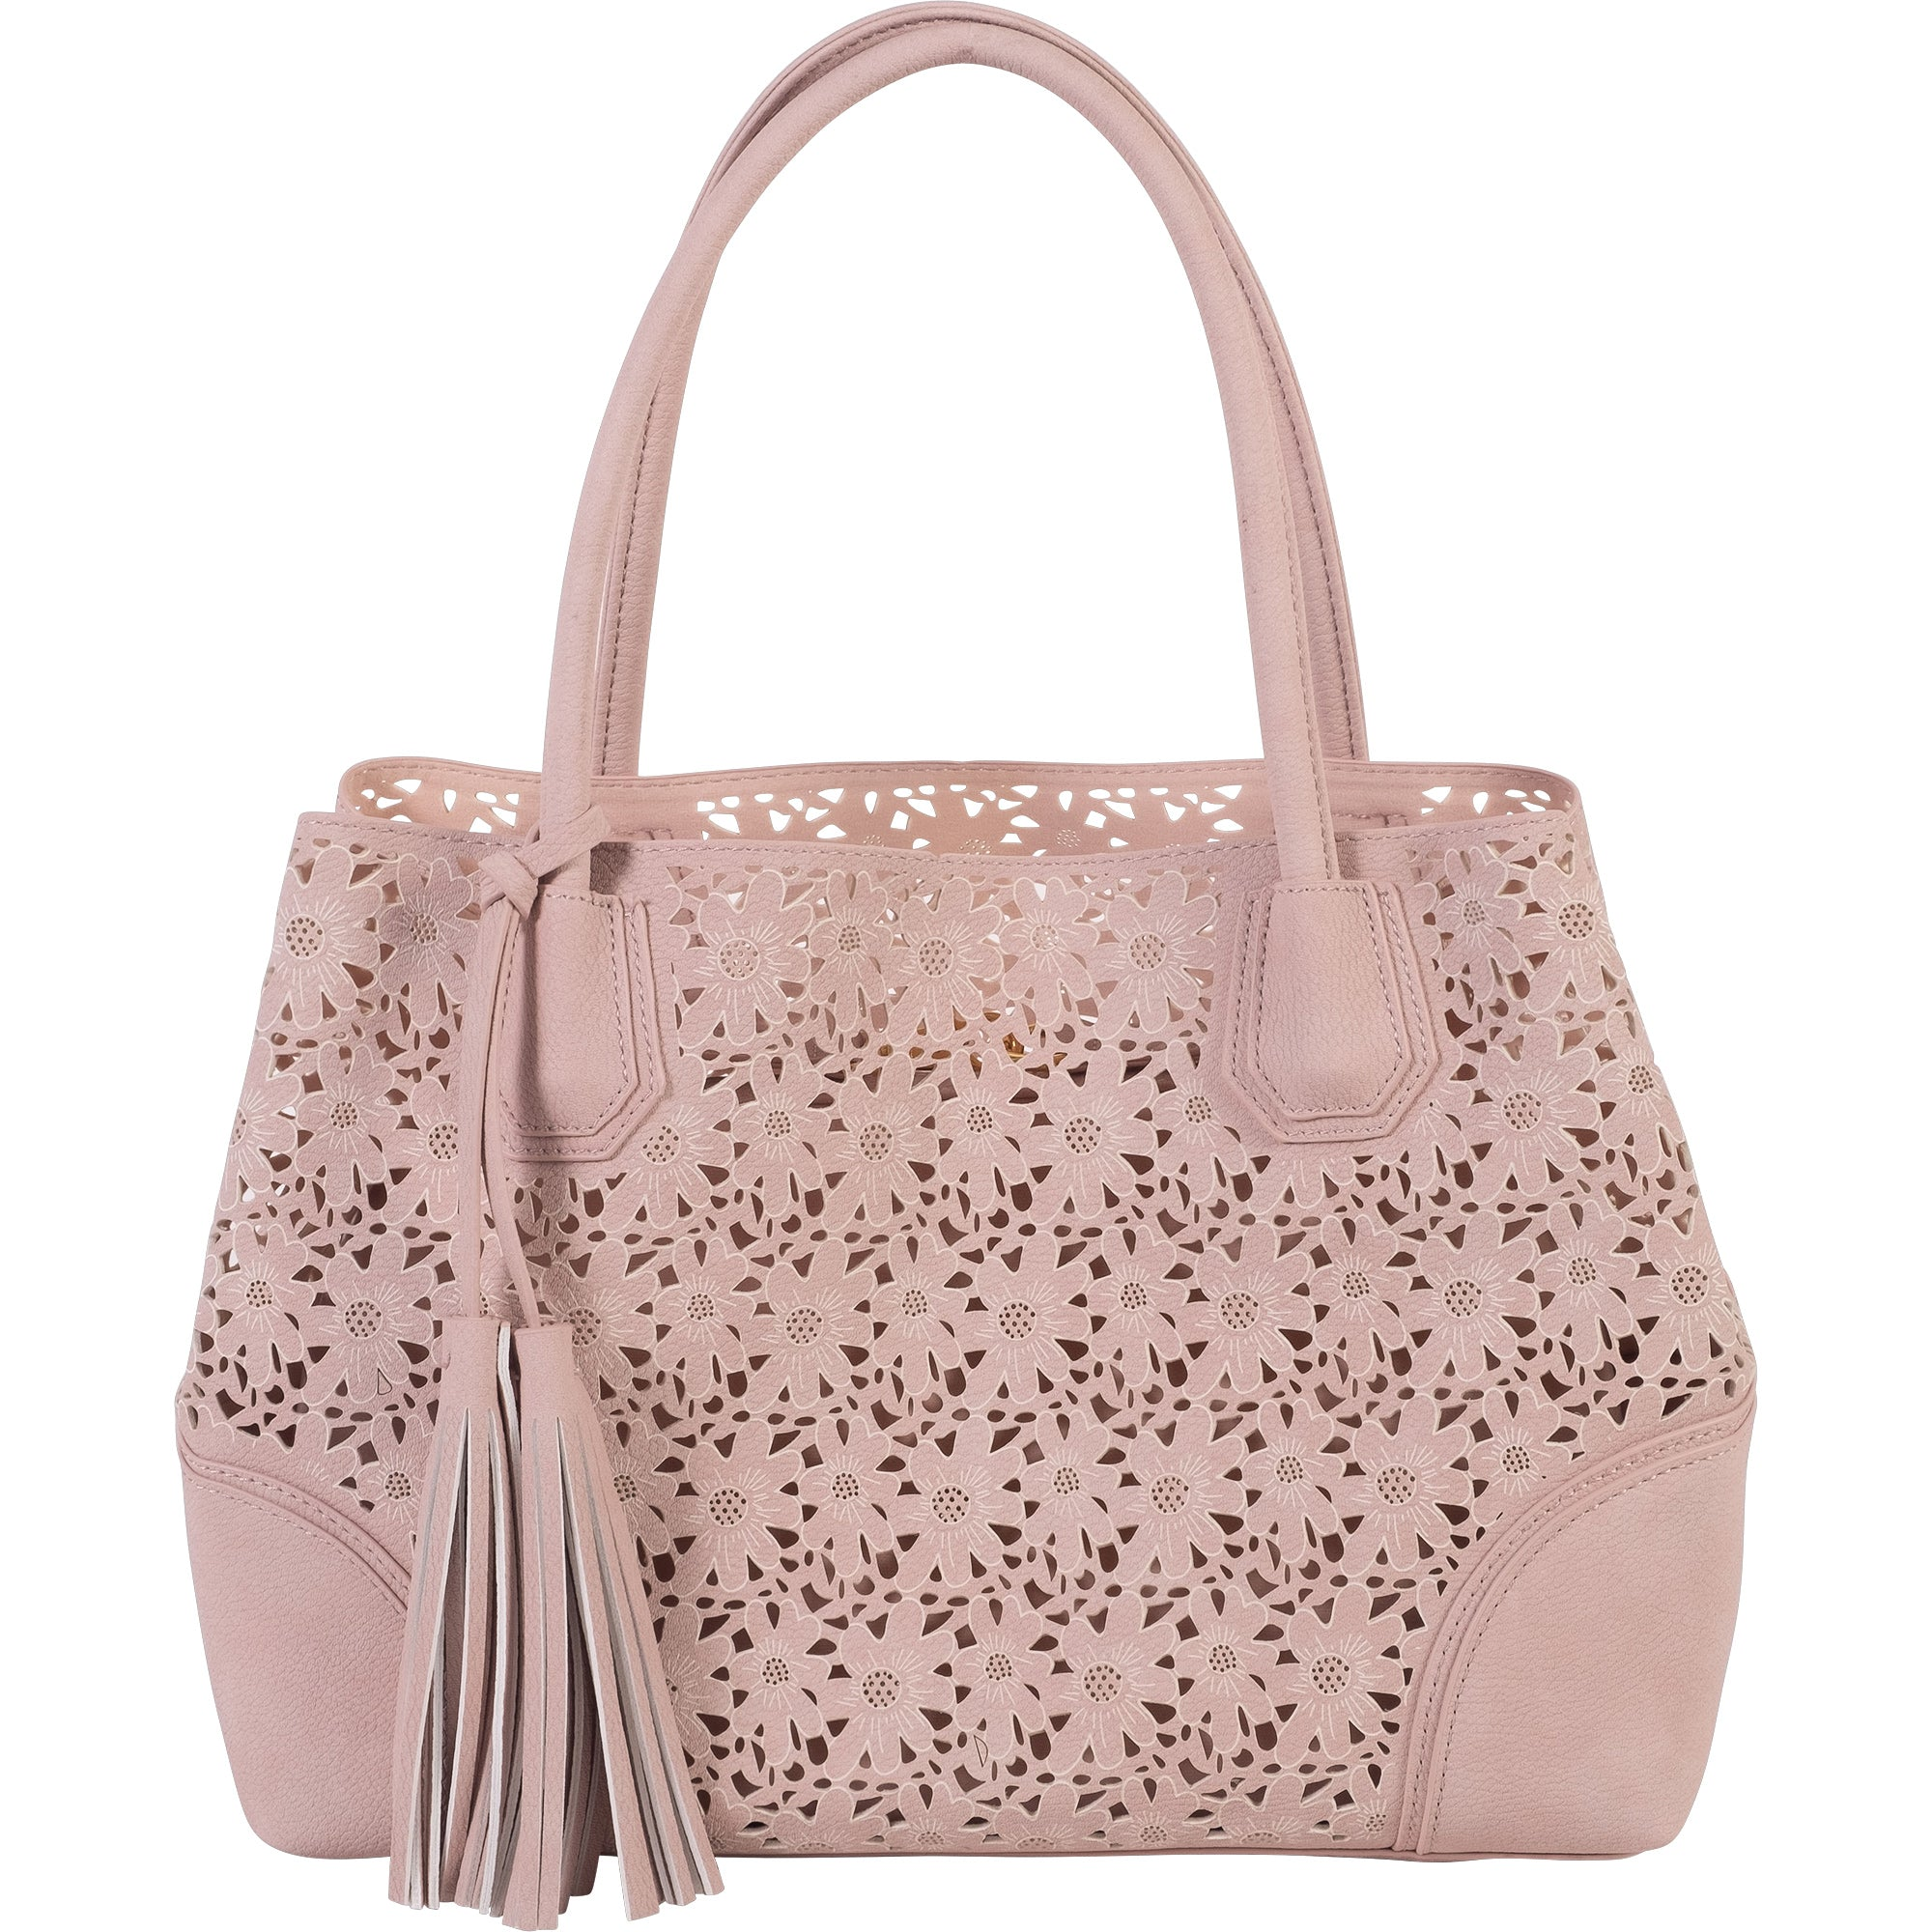 Daisy Satchel with removable inside pouch - Blush color